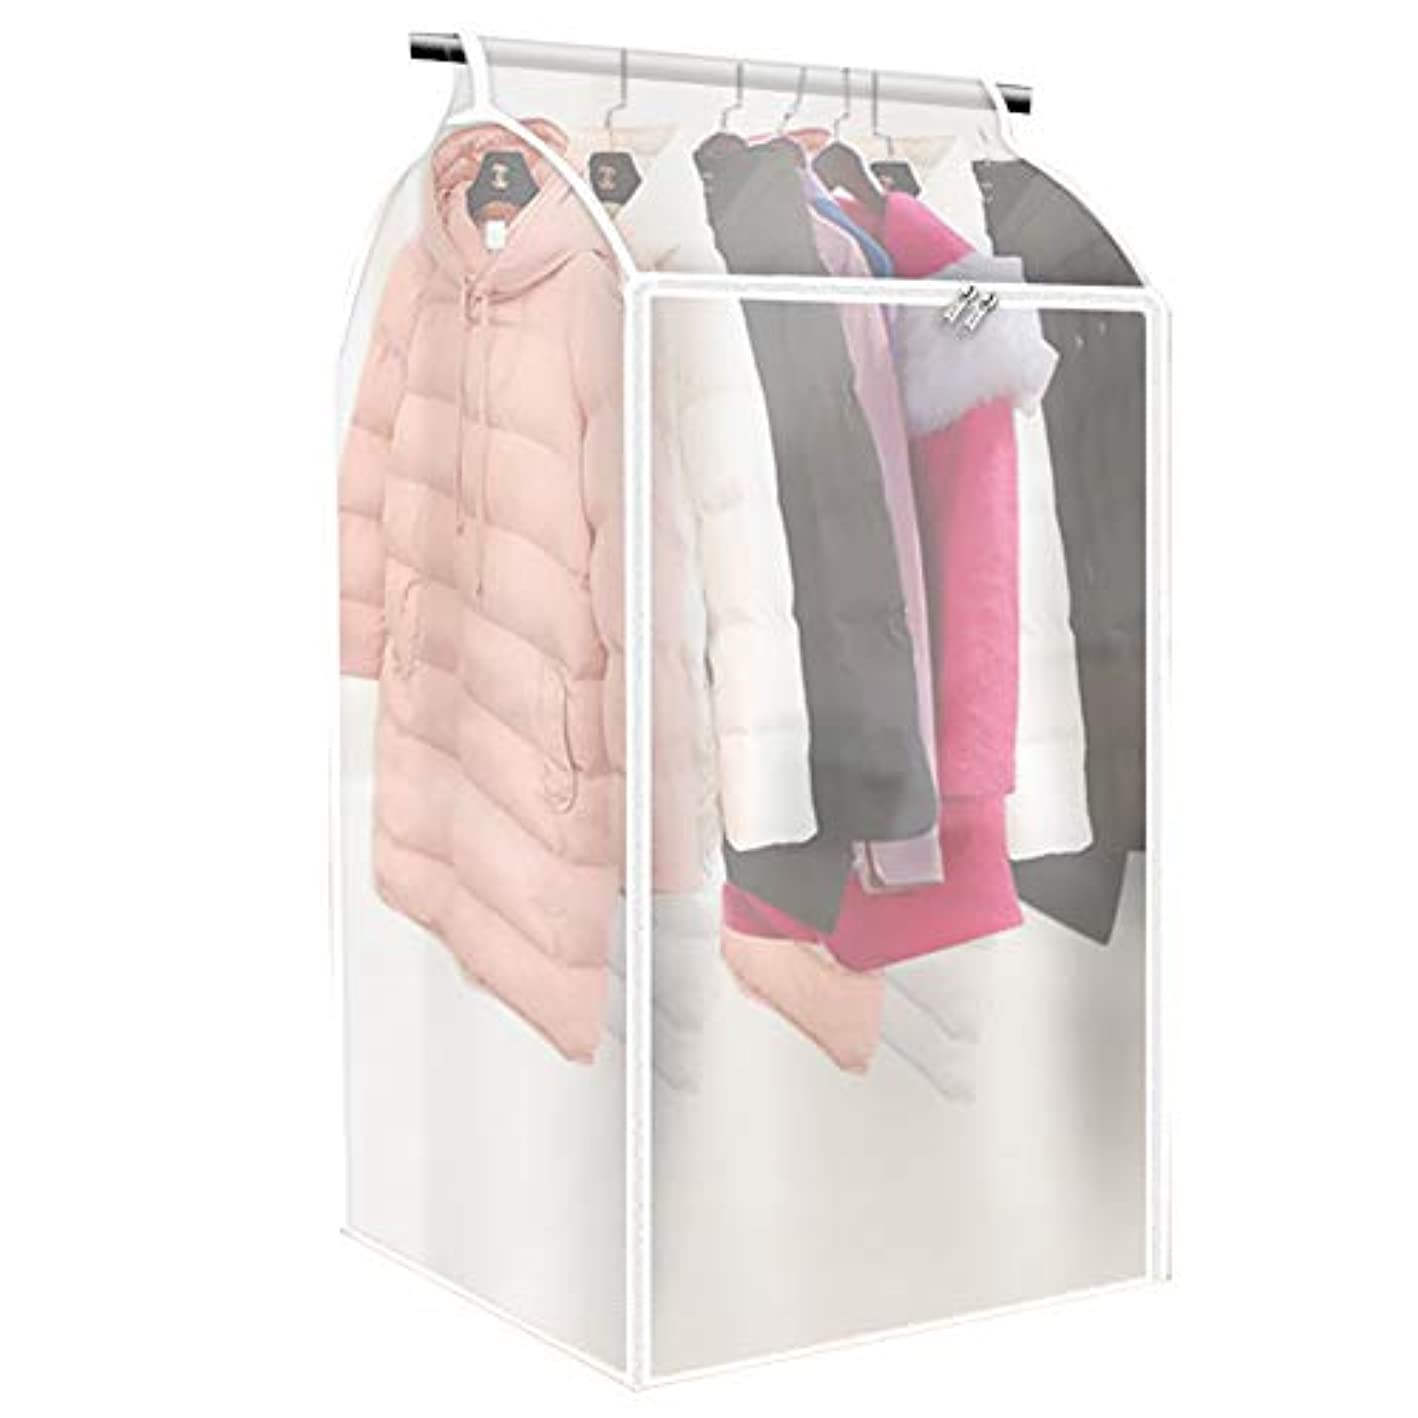 Large Transparent Garment Storage Bag, Jumbo Garment Cover Protector, Clothing Closet Storage Organizer, Dustproof & Waterproof PEVA Wardrobe with Full Zipper(L: 20